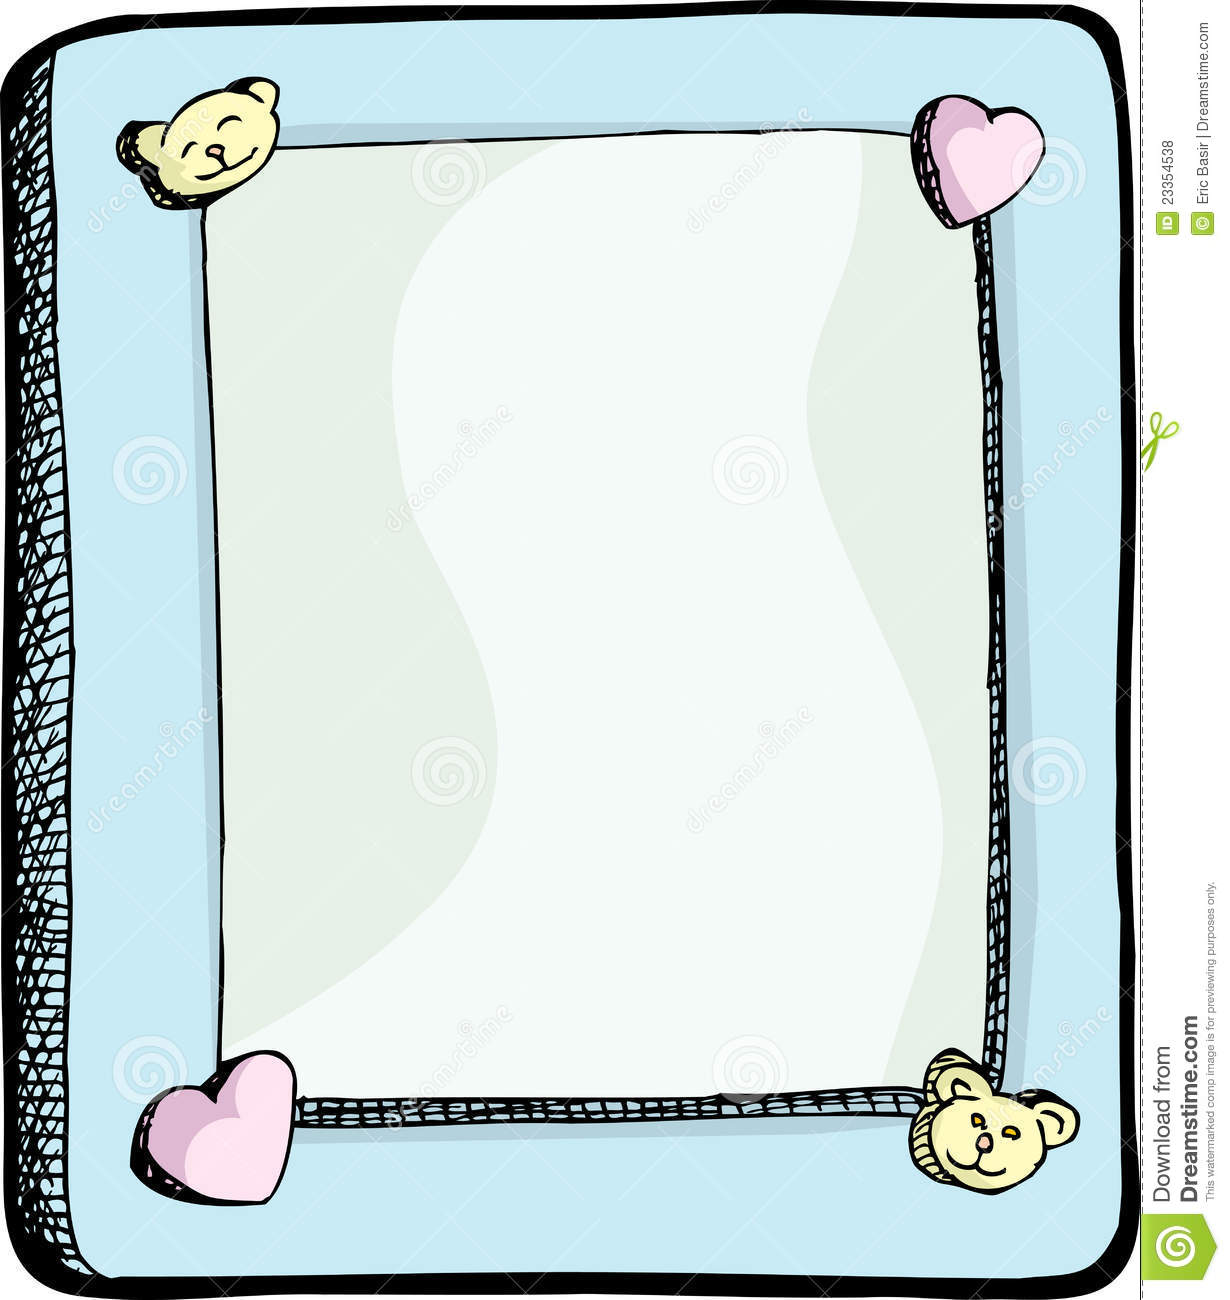 cute picture frame royalty free stock photos image 23354538 Free Summer Clip Art Flip Flop Clip Art Free